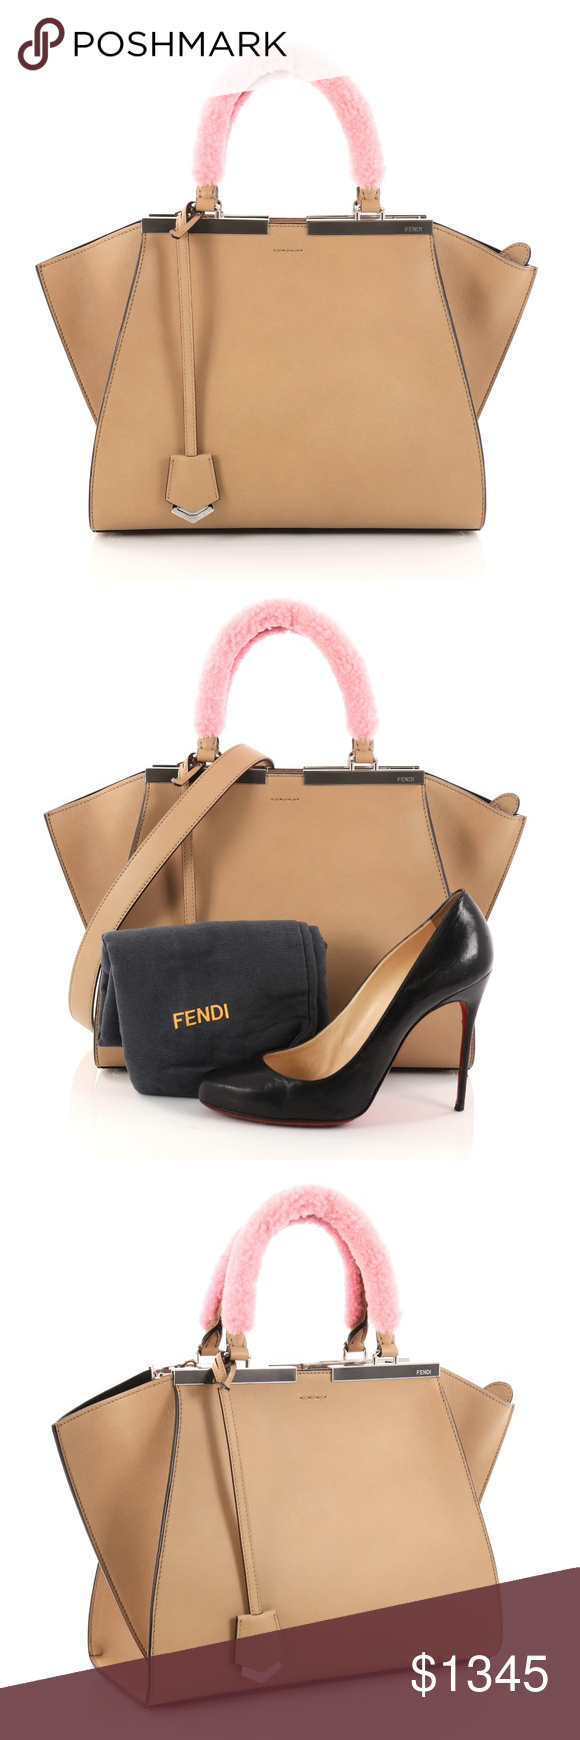 d6c7fa71030c Fendi 3Jours Handbag Leather with Shearling Petite Condition  Excellent.  Minor wear in interior